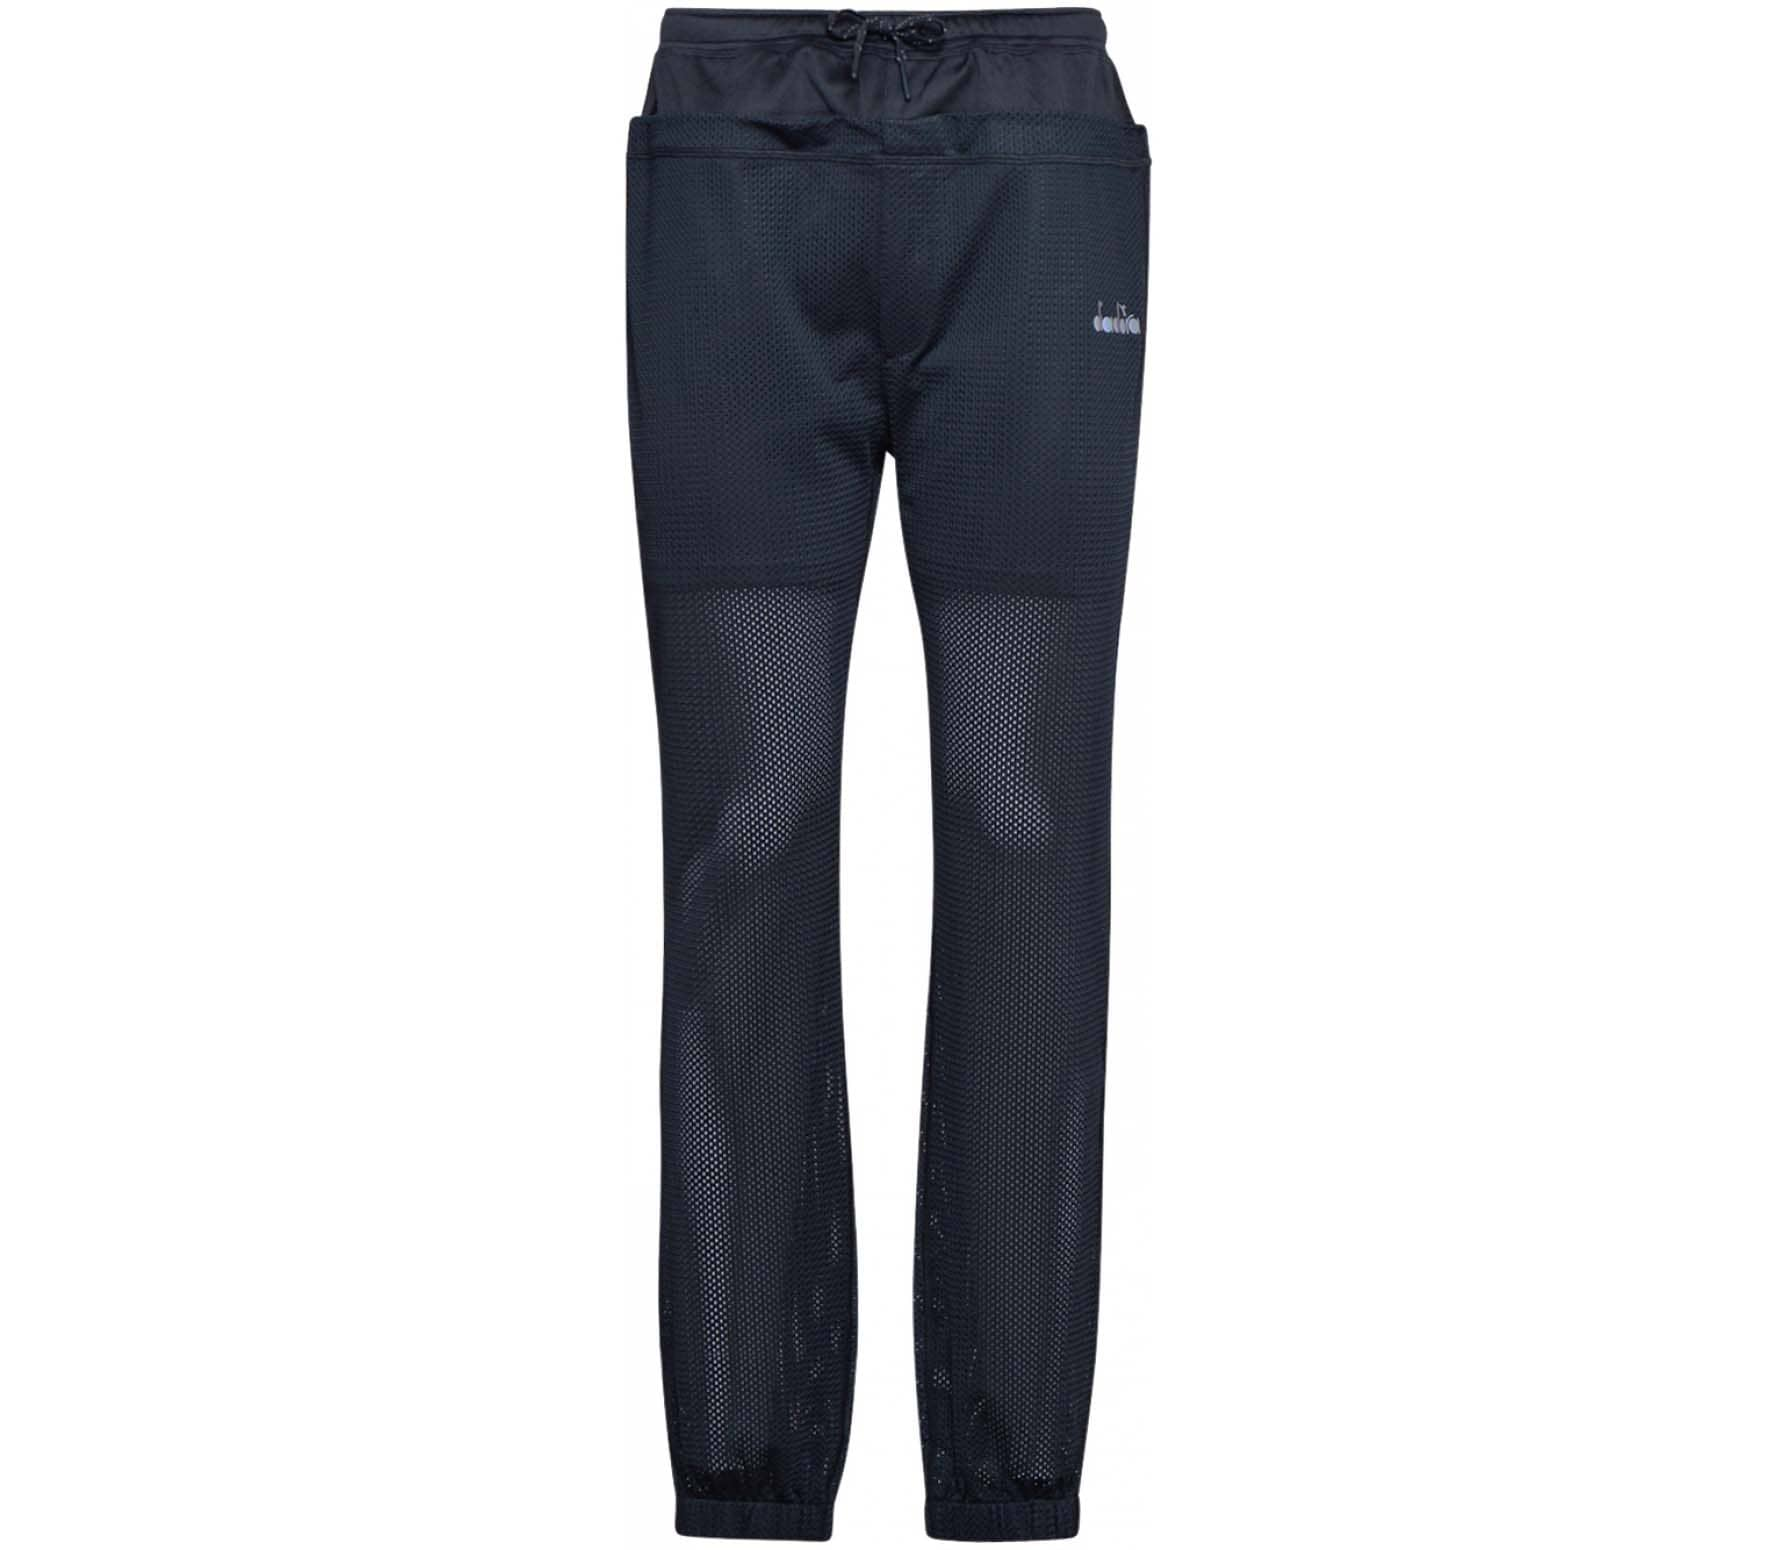 Diadora Workout Femmes pantalon Damen